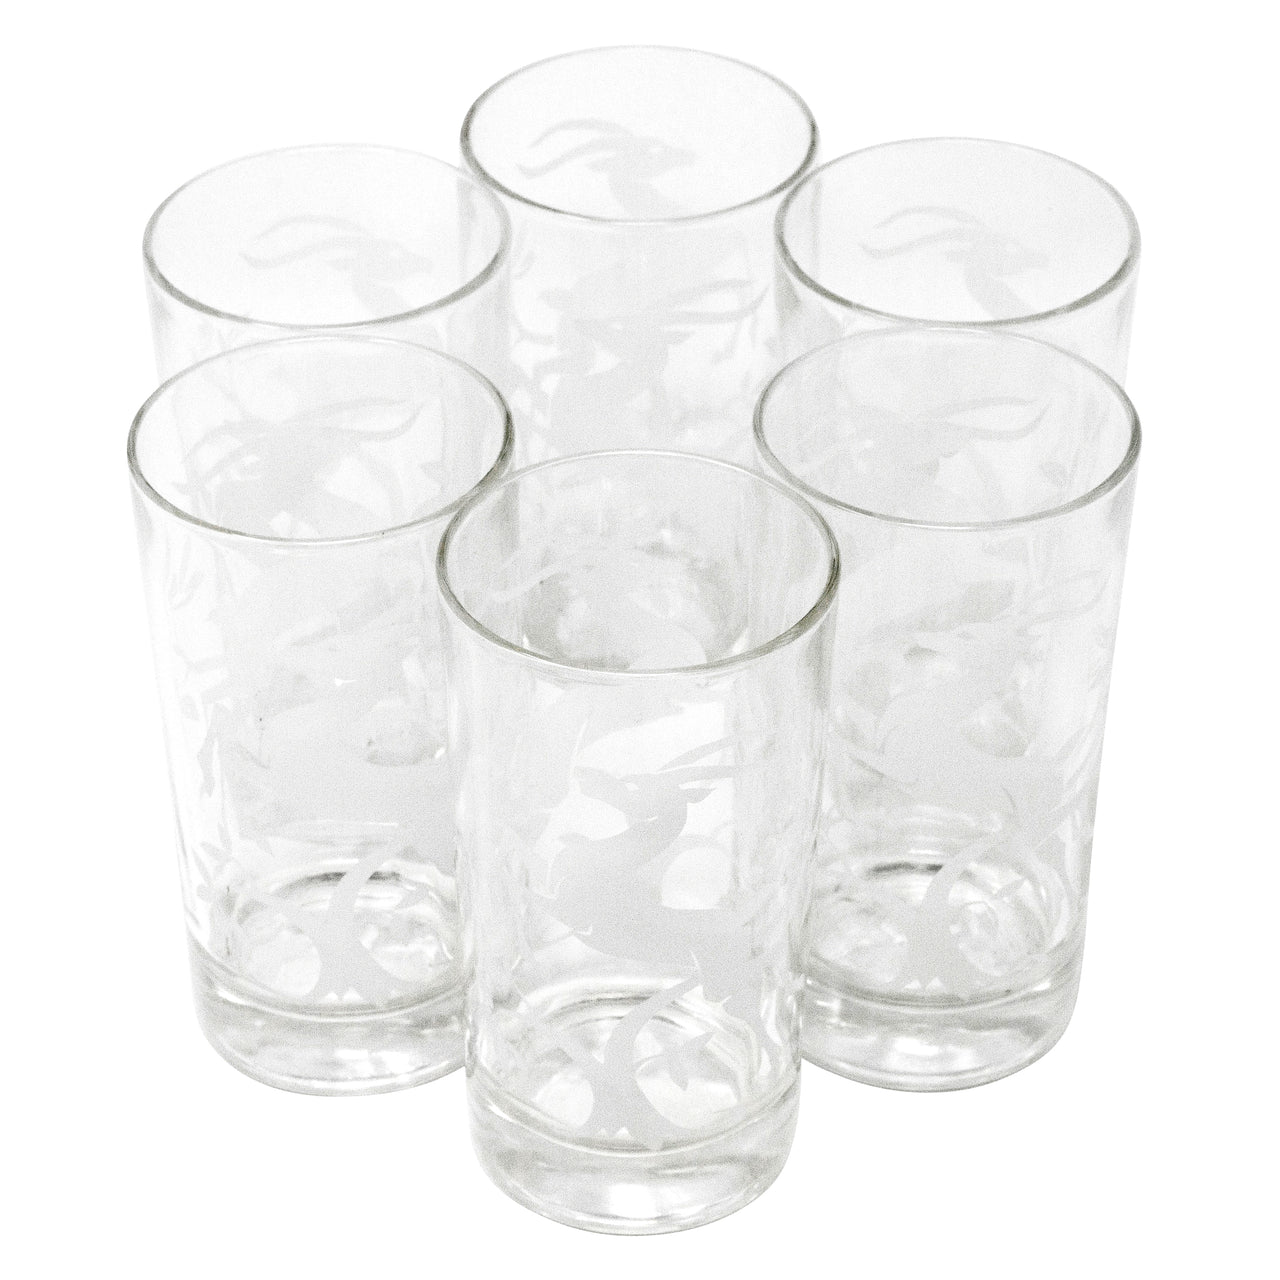 Hazel Atlas White Gazelle Collins Glasses | Set of 6